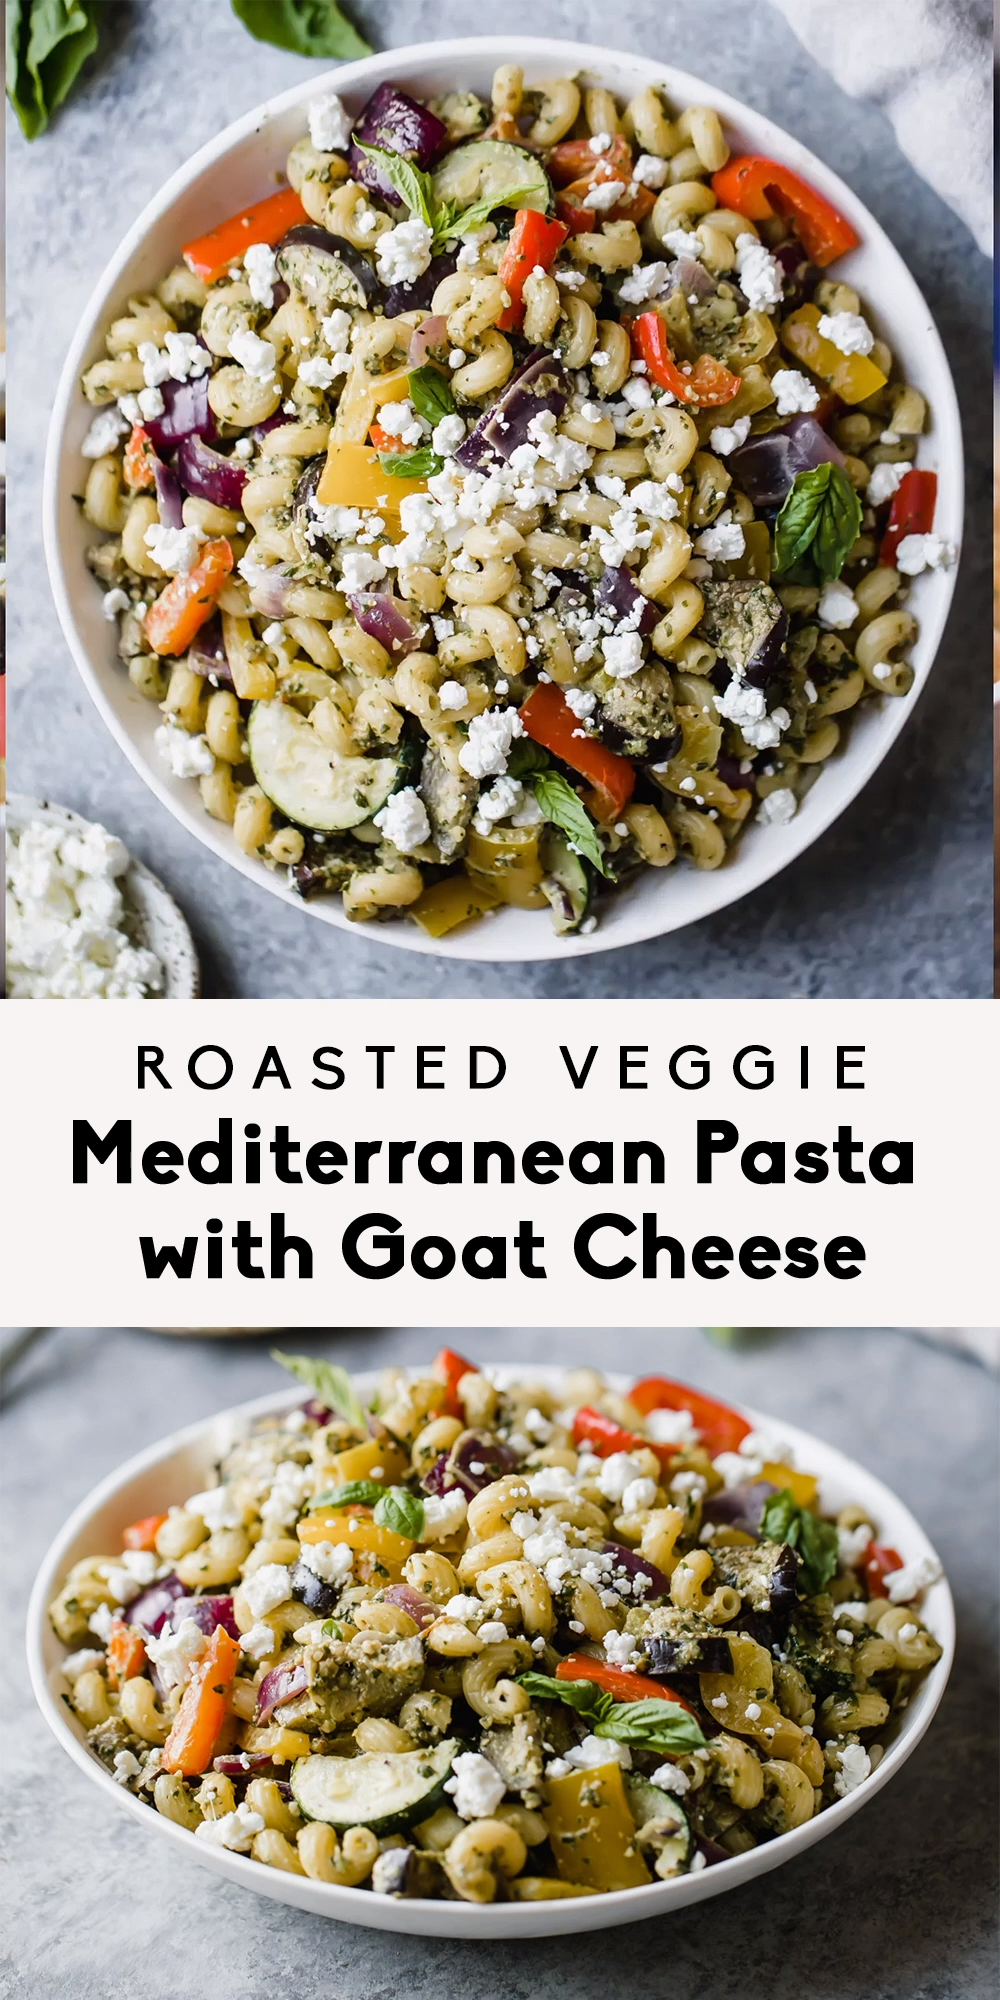 Roasted Veggie Mediterranean Pasta with Goat Cheese